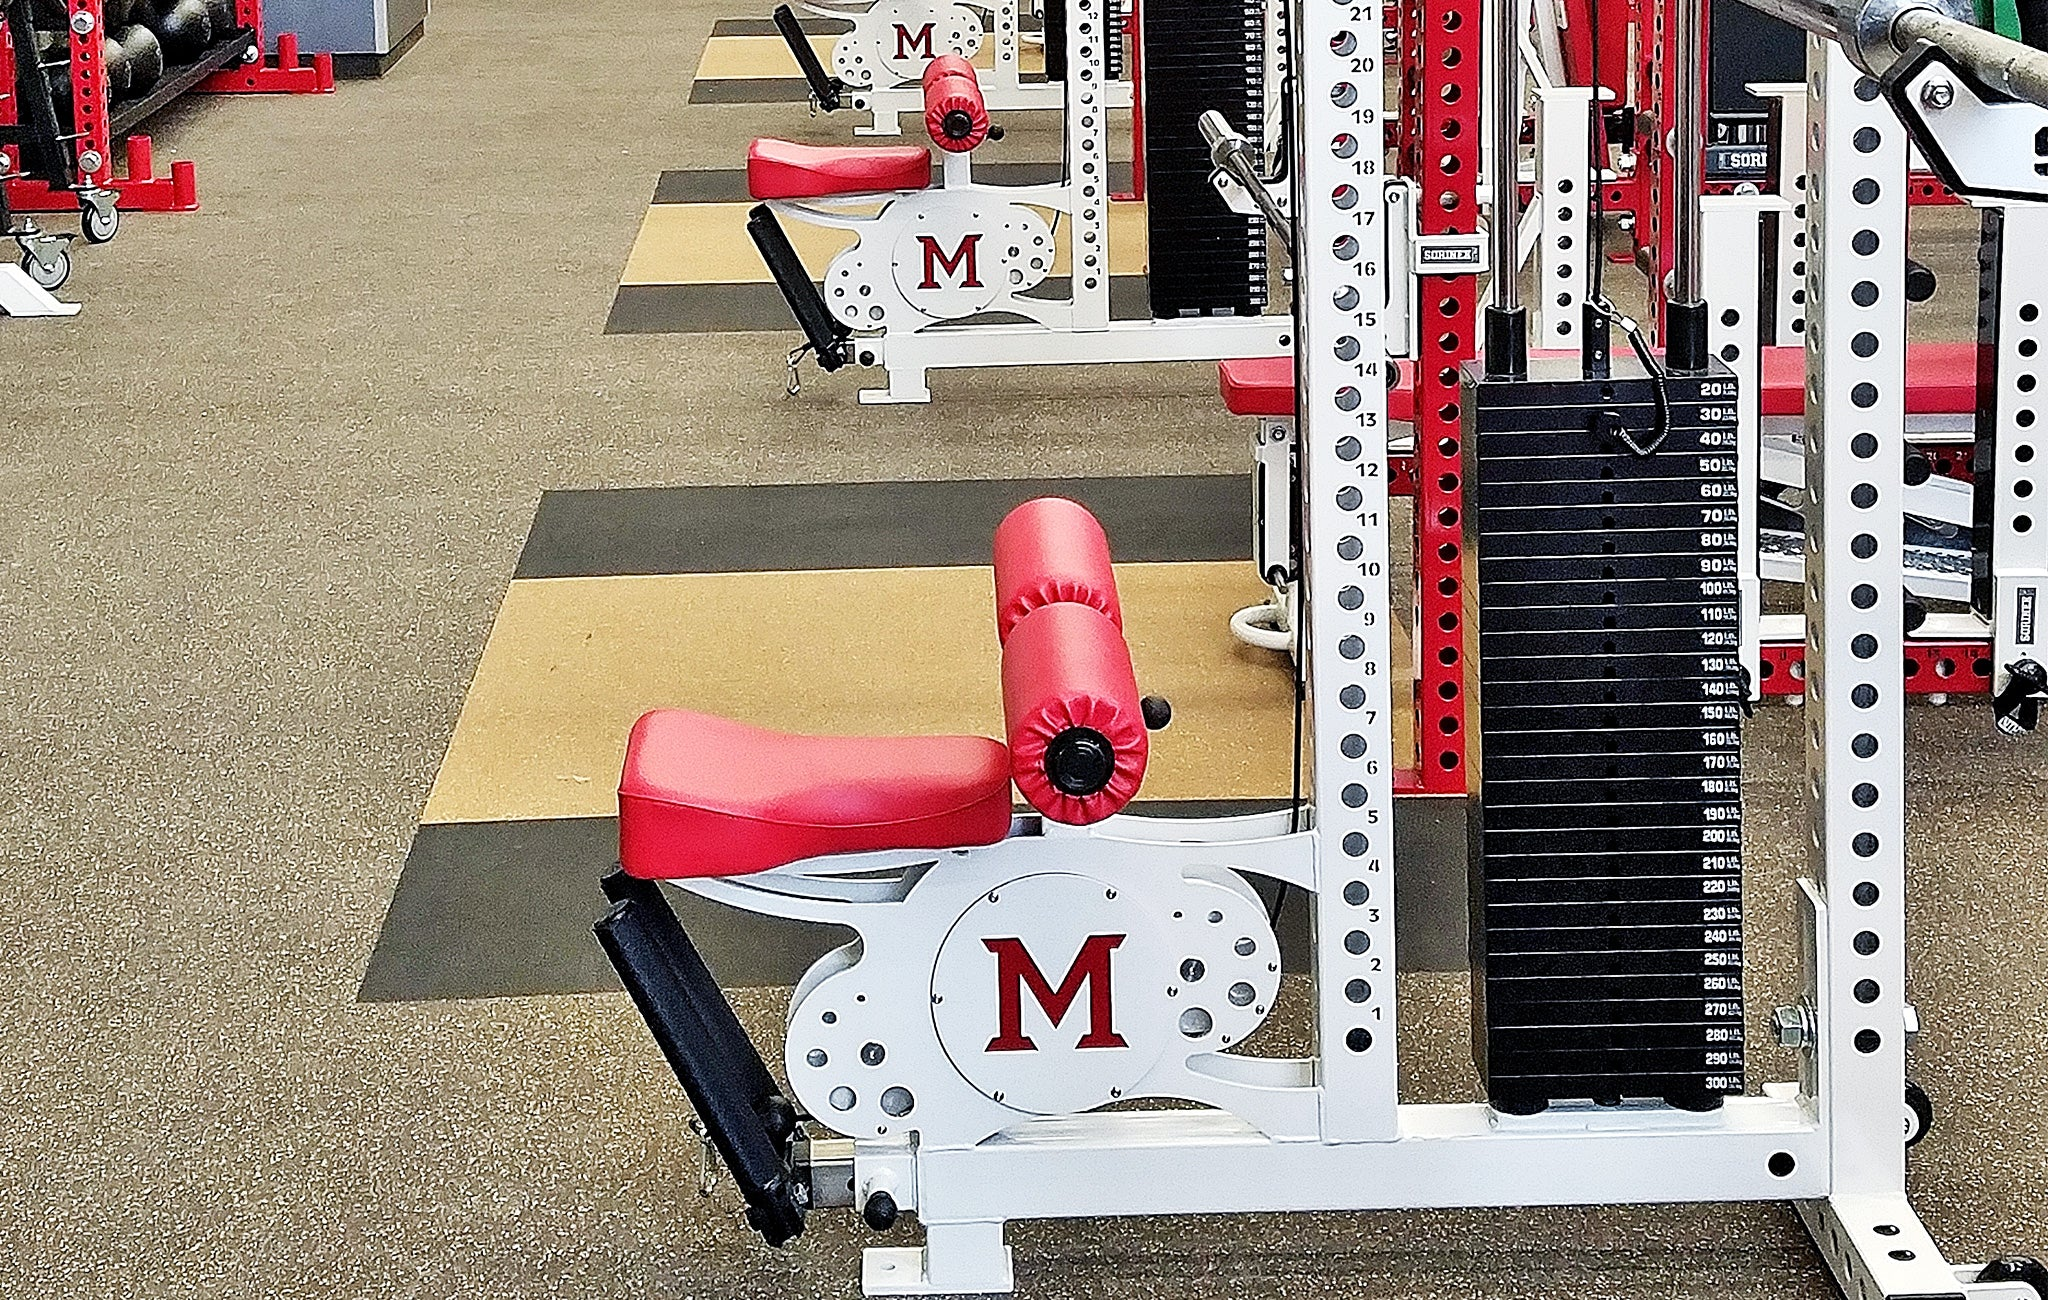 Ohio Miami University Football strength training